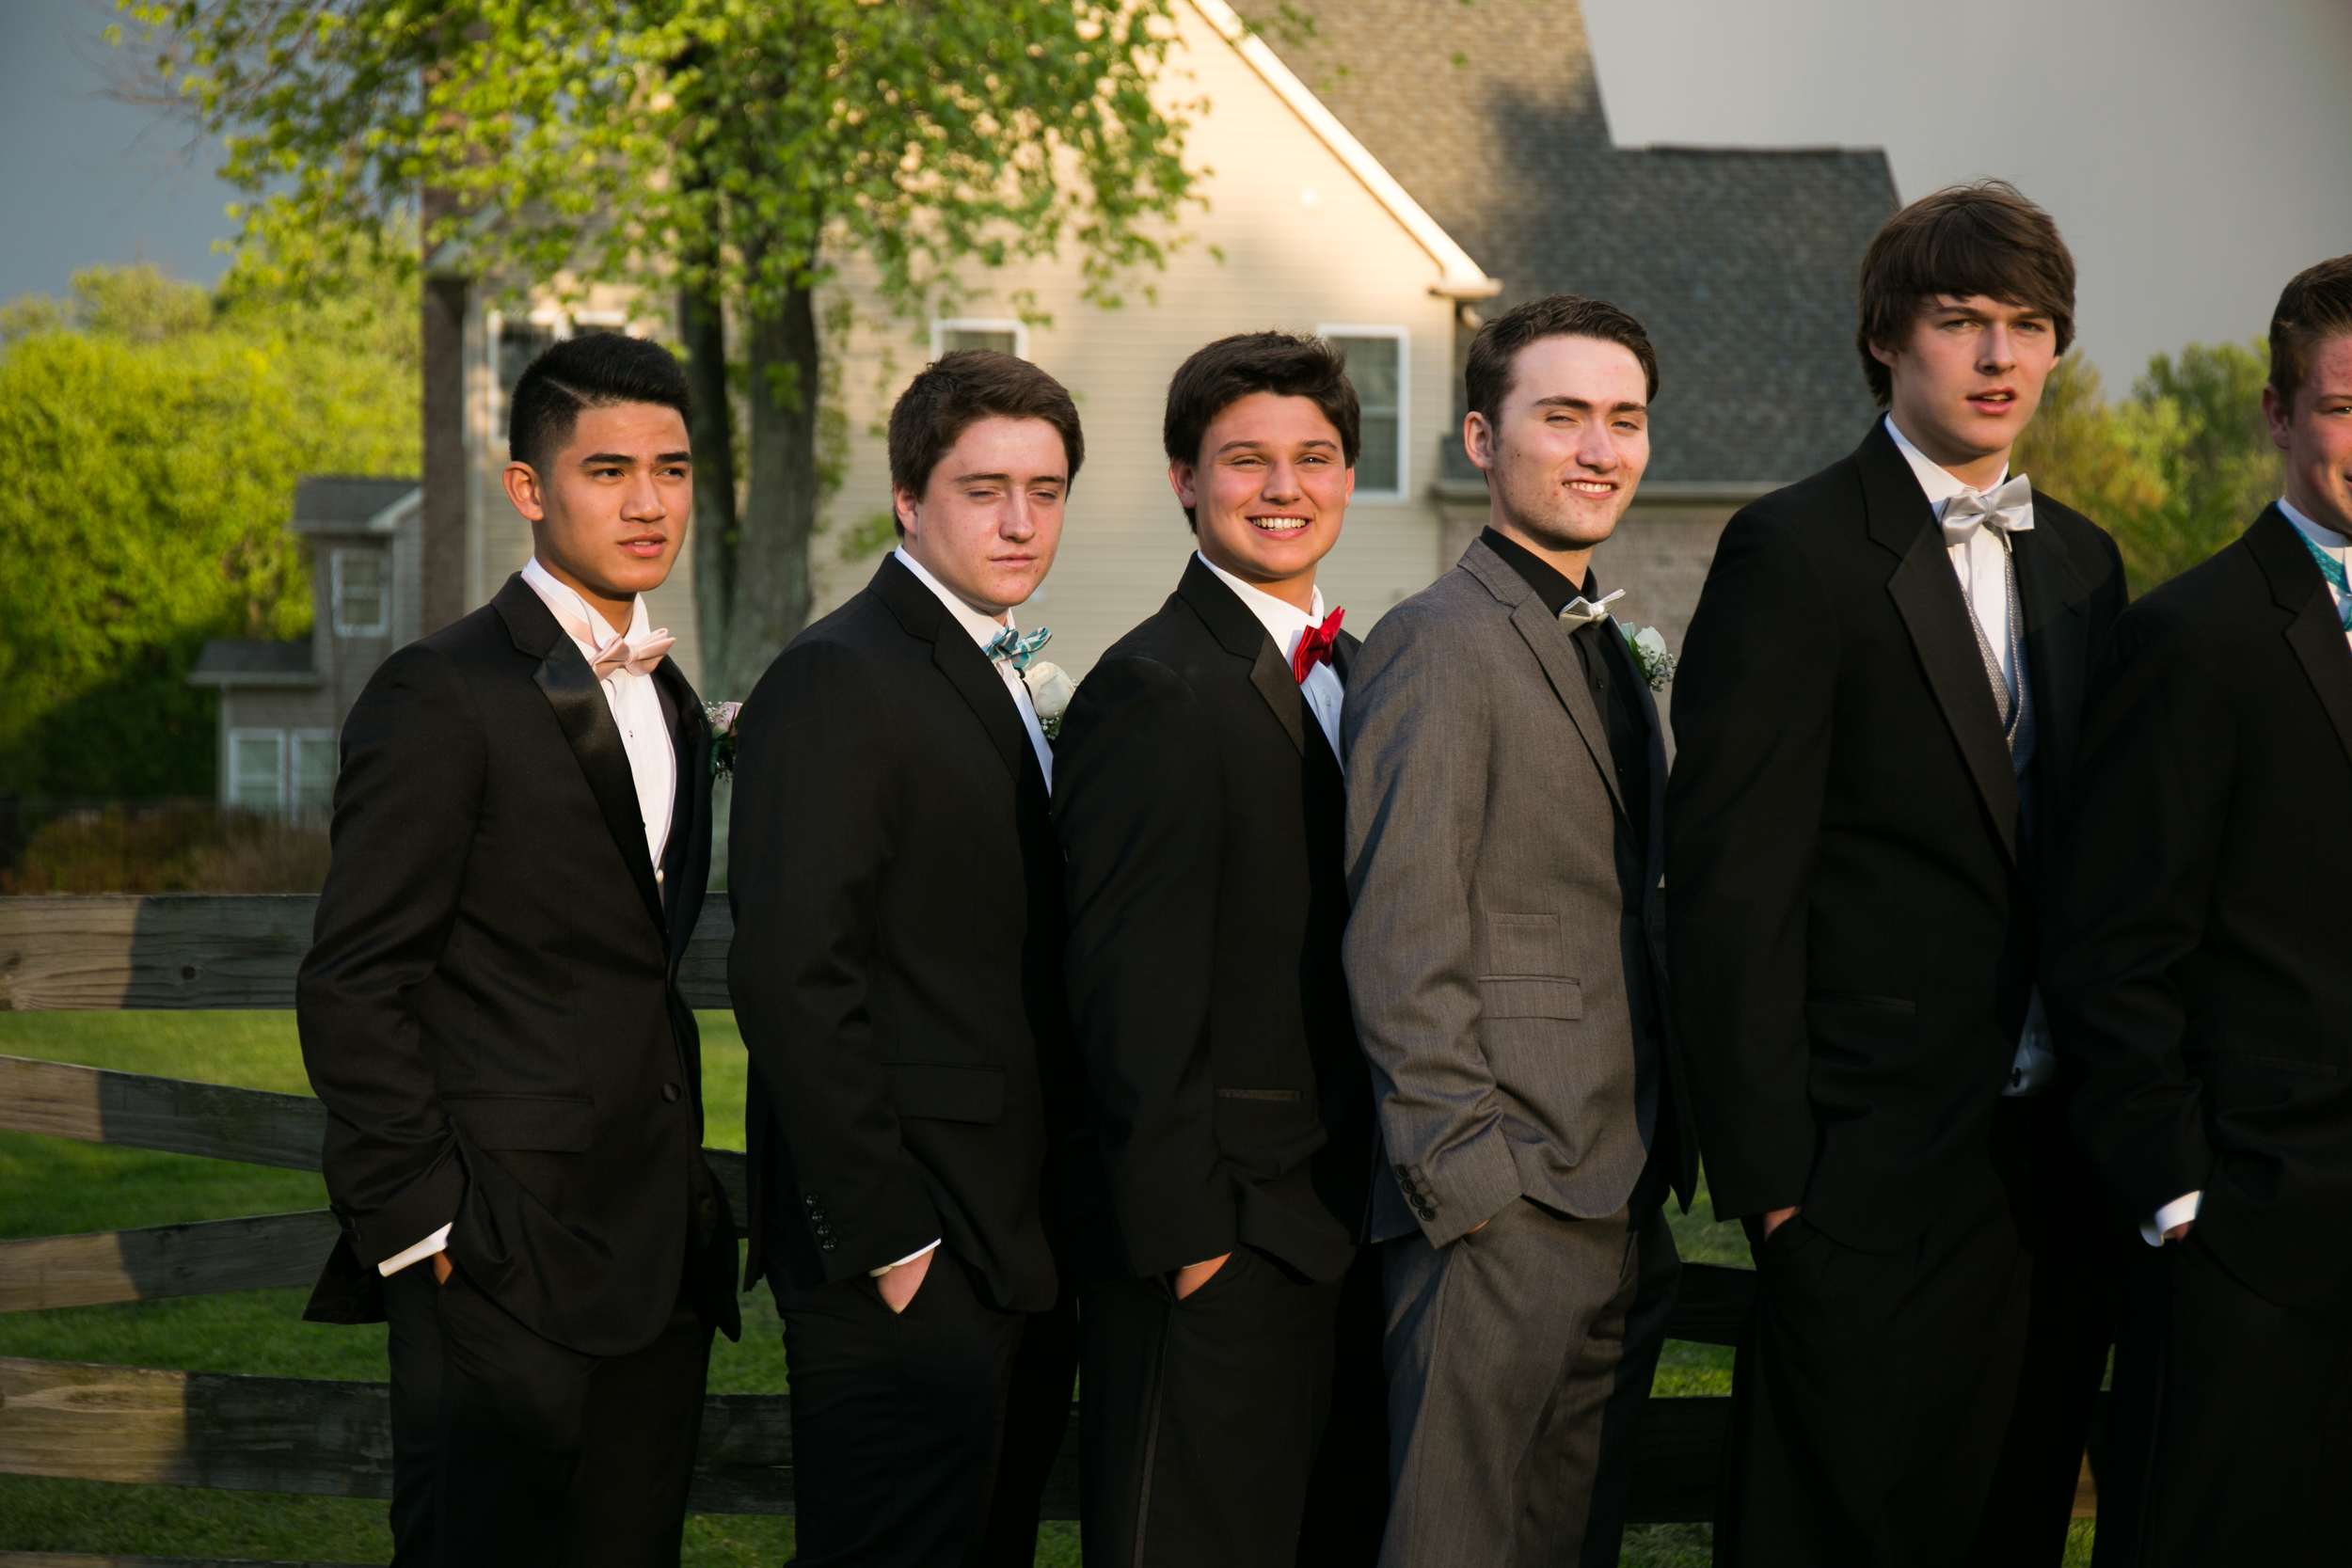 Mount-De-Sales-Pre-Prom-May-2014-59.jpg